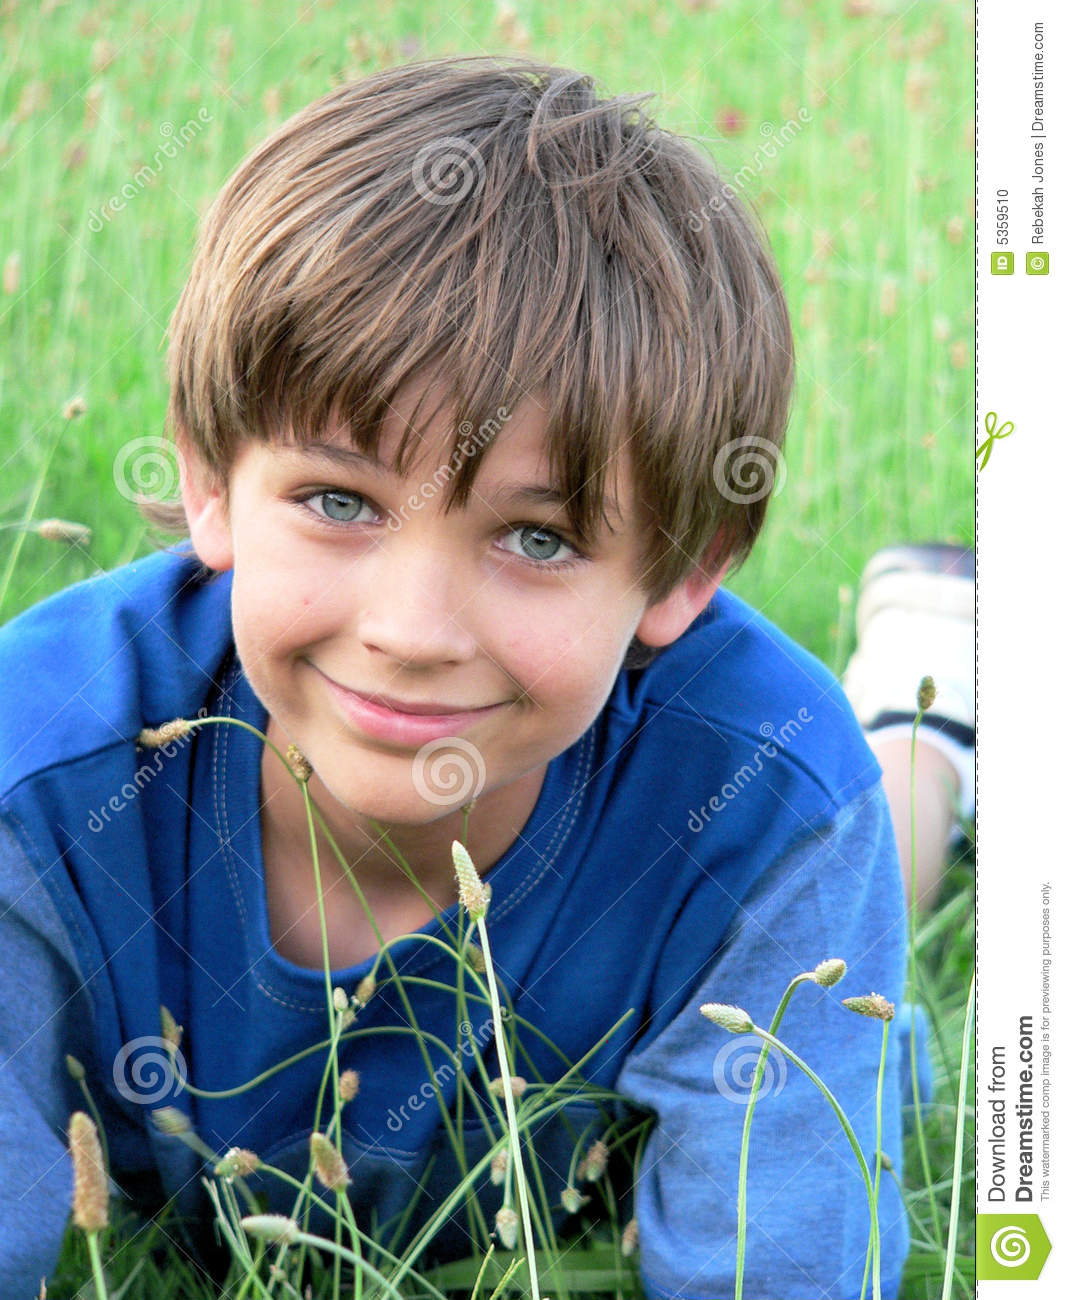 little-boy-blue-green-field-5359510.jpg